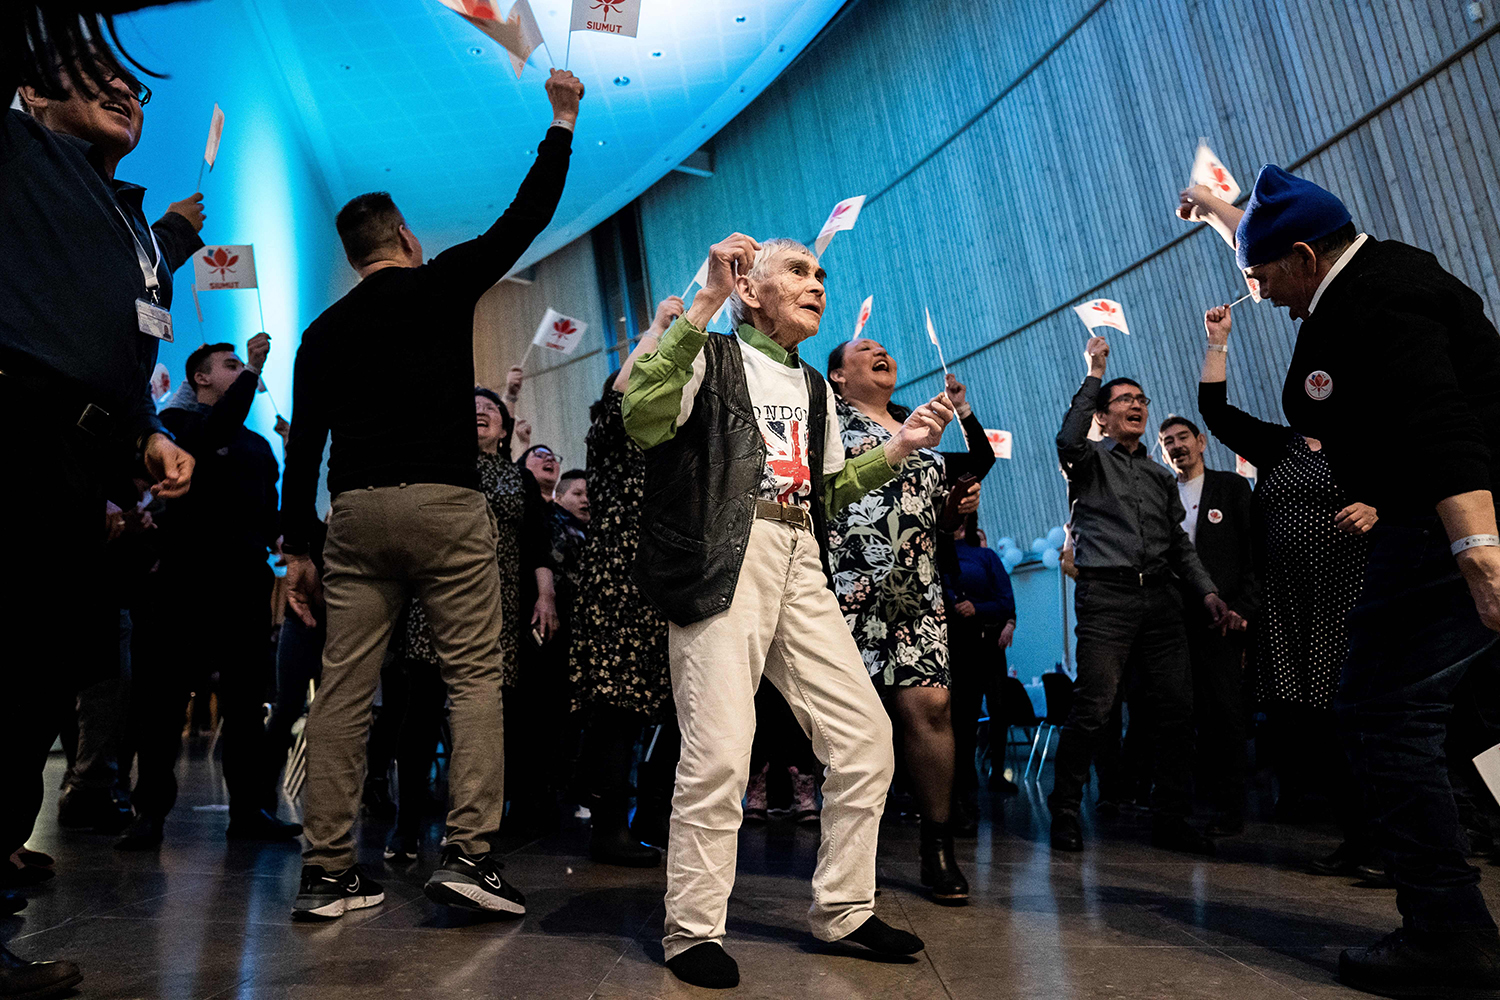 Members of the Siumut party wave flags as they celebrate exit poll results during the legislative election in Nuuk, Greenland, on April 6. EMIL HELMS/Ritzau Scanpix/AFP via Getty Images